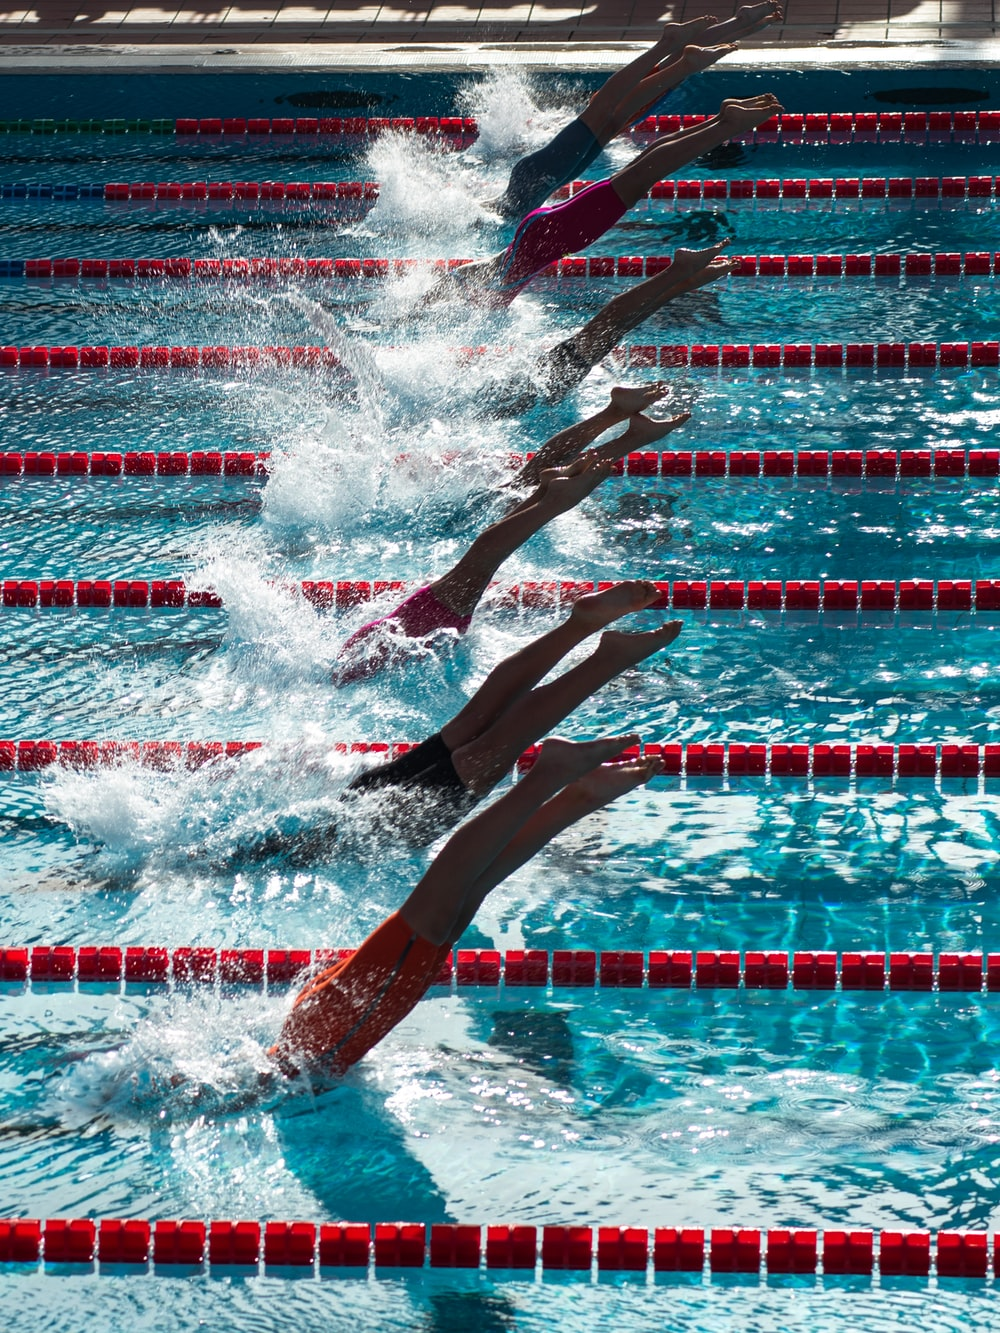 swimming competition during daytime